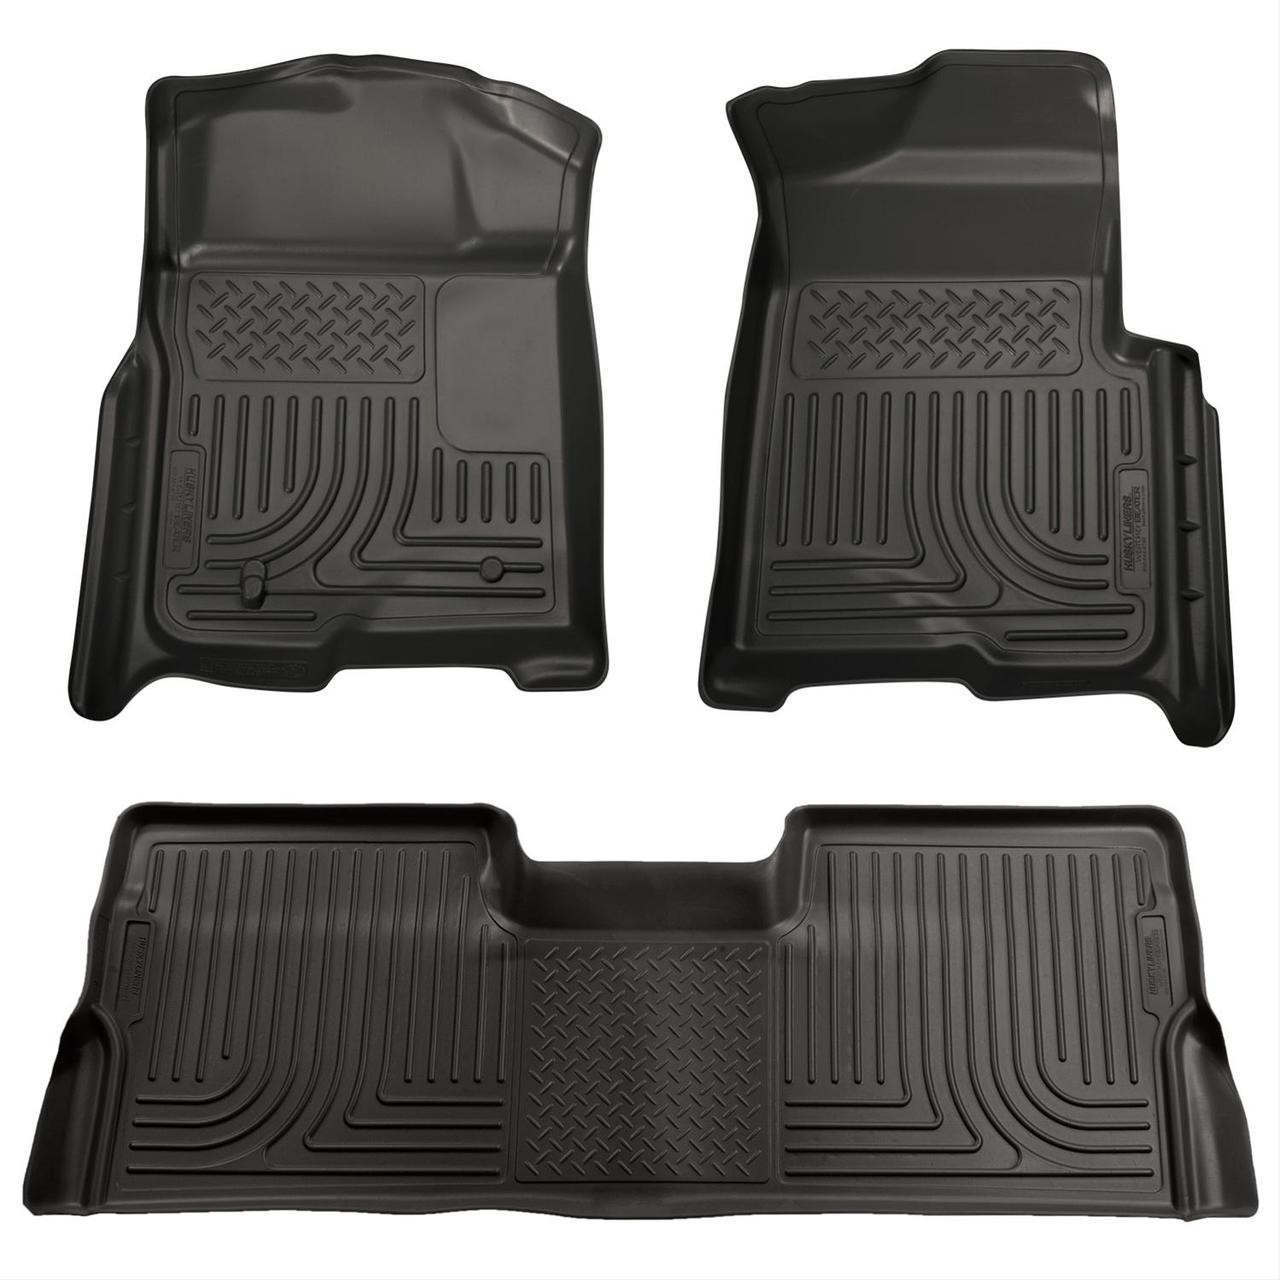 08-10 FORD SD SUPER CAB W/O MANUAL 4X4 TRANSFER CASE WEATHERBEATER FRONT/2ND SEAT FLR LNR 3PC BLACK